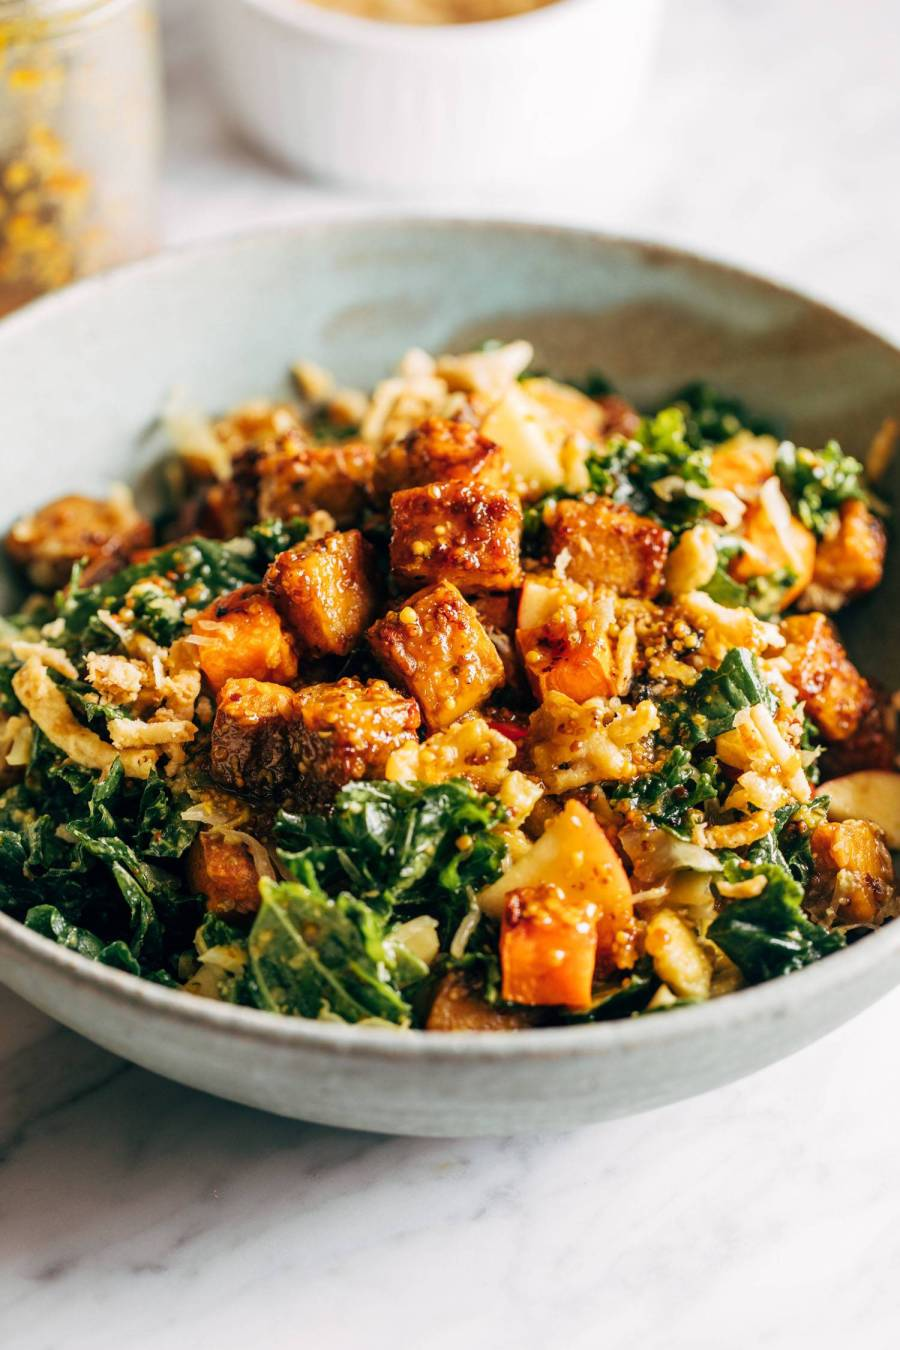 Maple mustard tempeh bowls in a grey bowl.